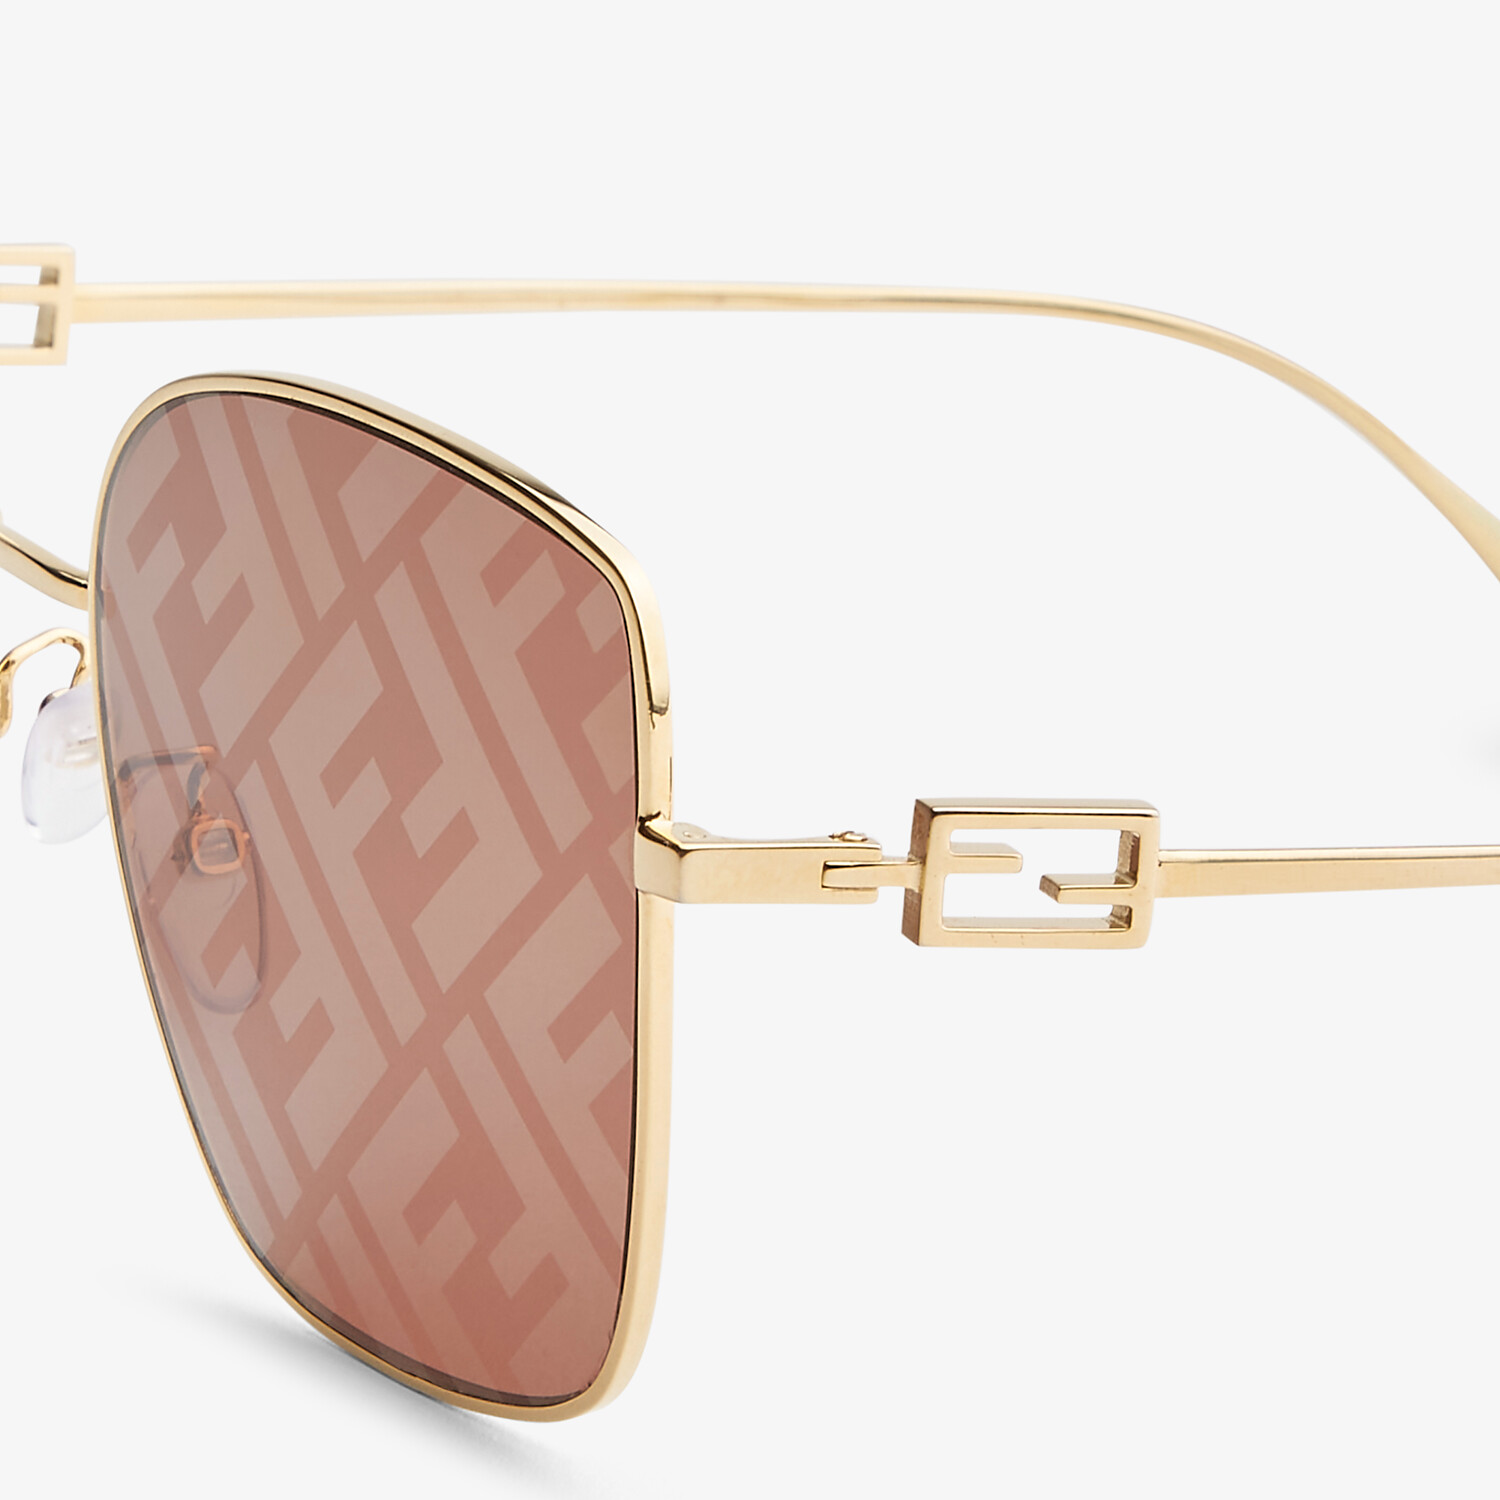 FENDI BAGUETTE - Sunglasses featuring brown lenses with FF logo - view 3 detail